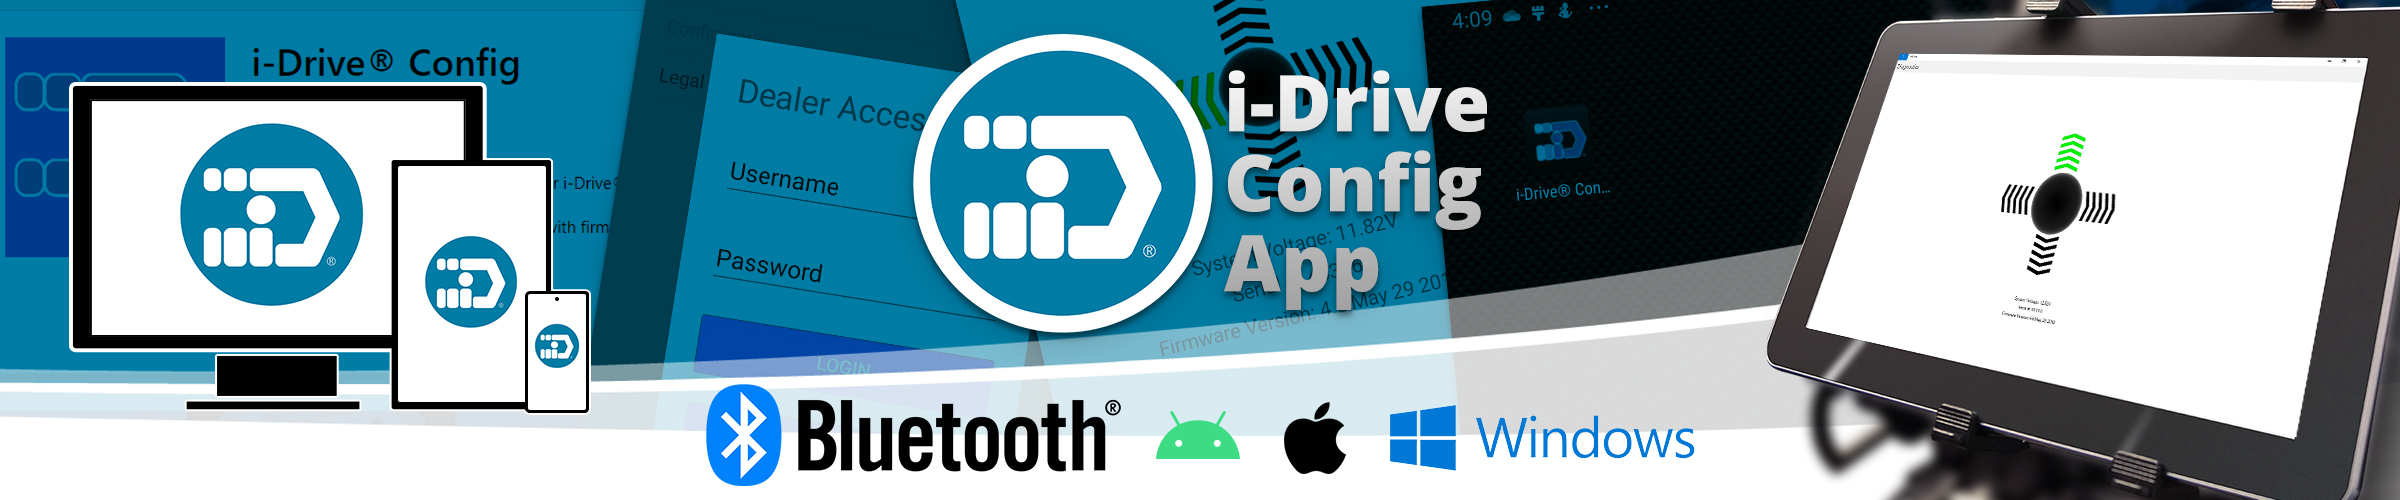 i-Drive Configuration App for Android, iOS and Windows.